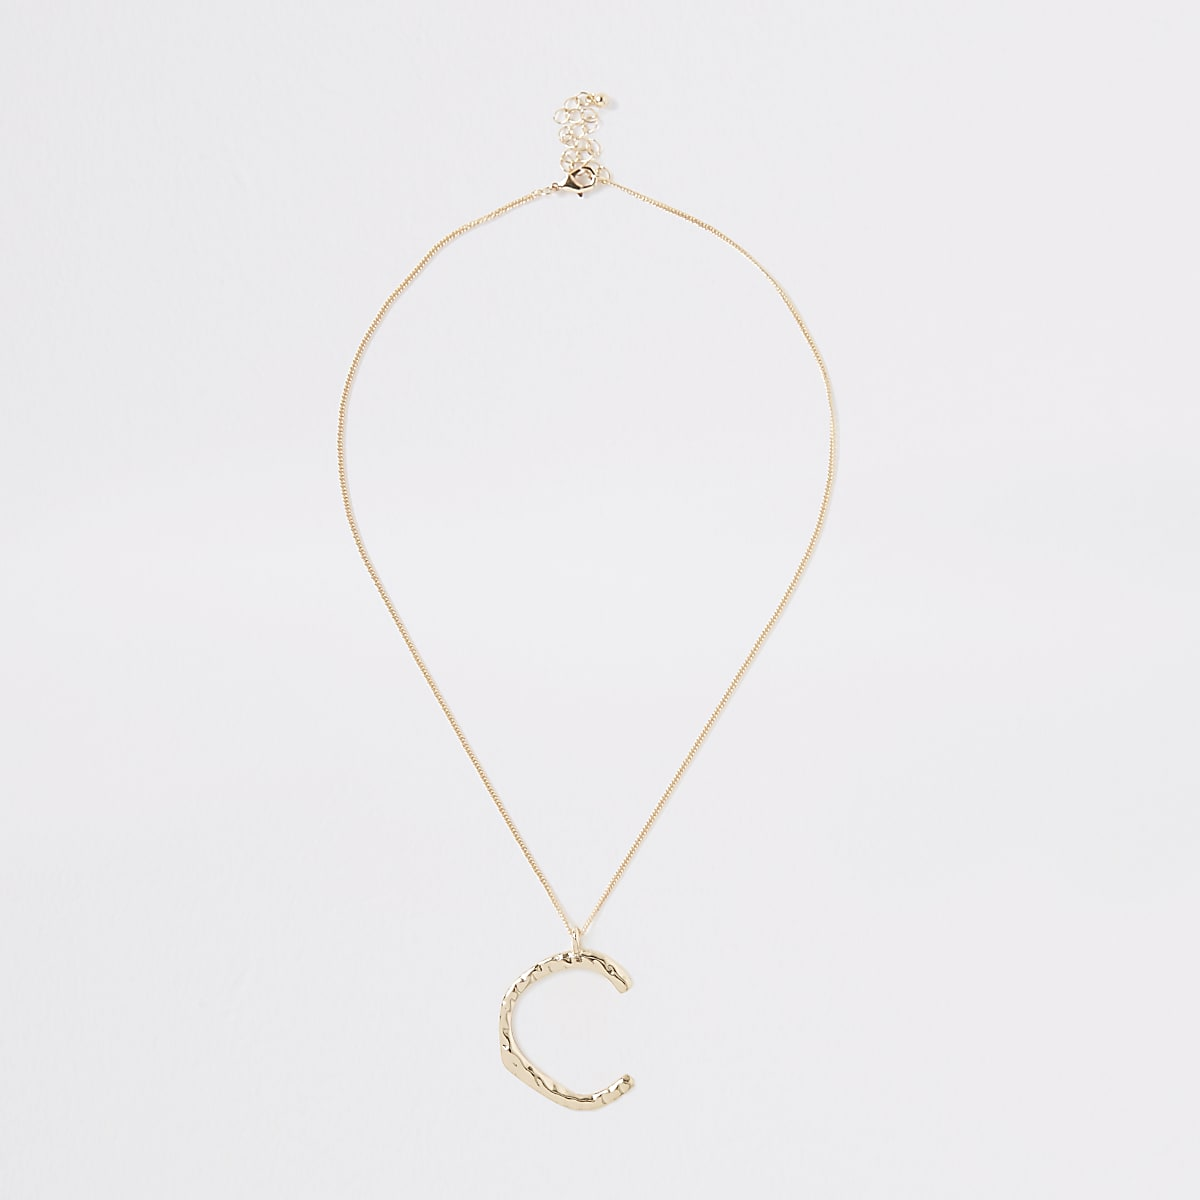 Gold color large initial 'C' necklace